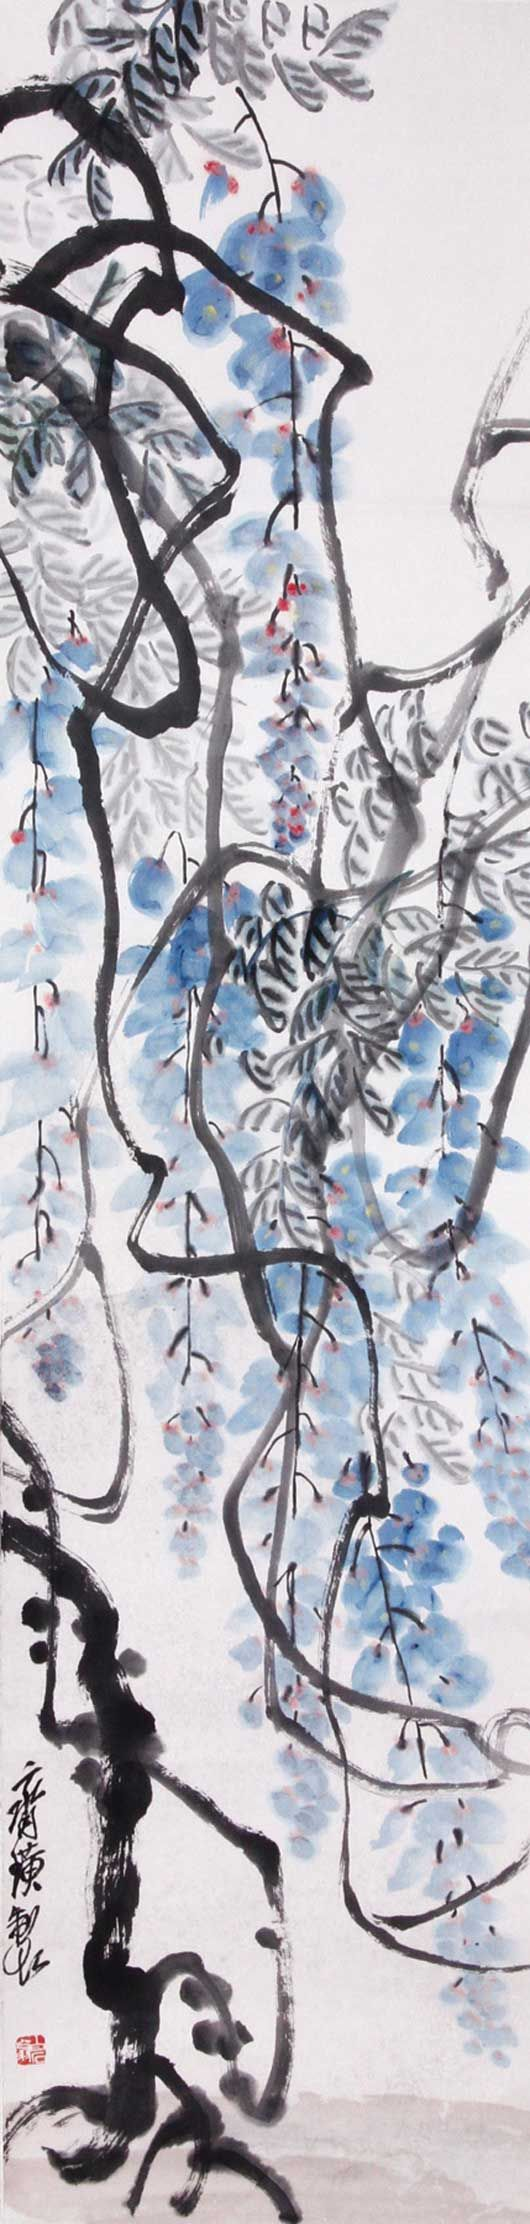 Qi Baishi (齊白石, 1864~1957) was an influential Chinese painter, noted for the whimsical, often playful style of his watercolor works; born to a peasant family from Xiangtan, Hunan, he became a carpenter at 14; learned to paint by himself.